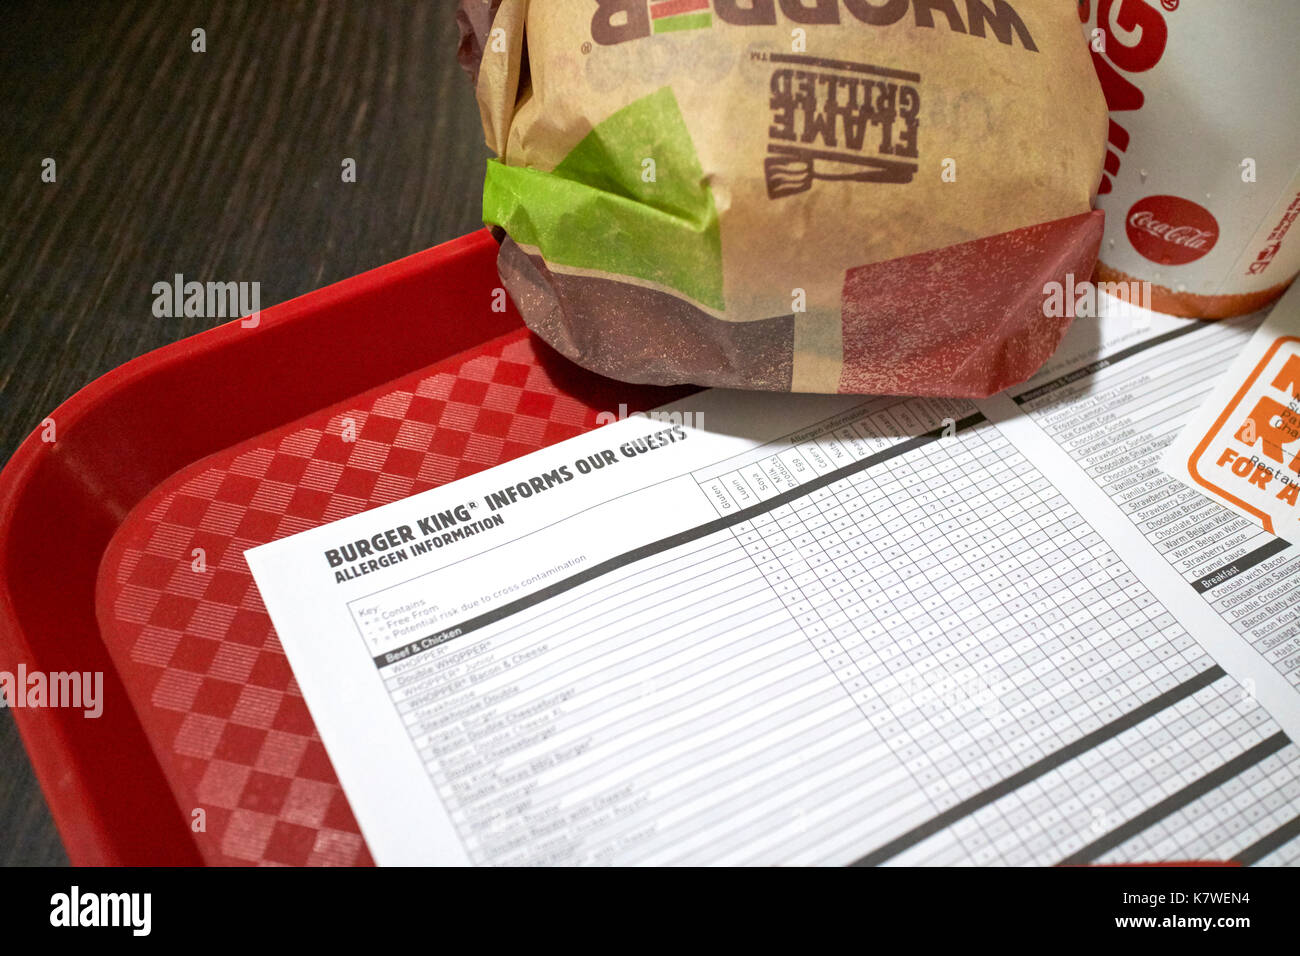 allergen information sheet on a tray with a burger king meal - Stock Image